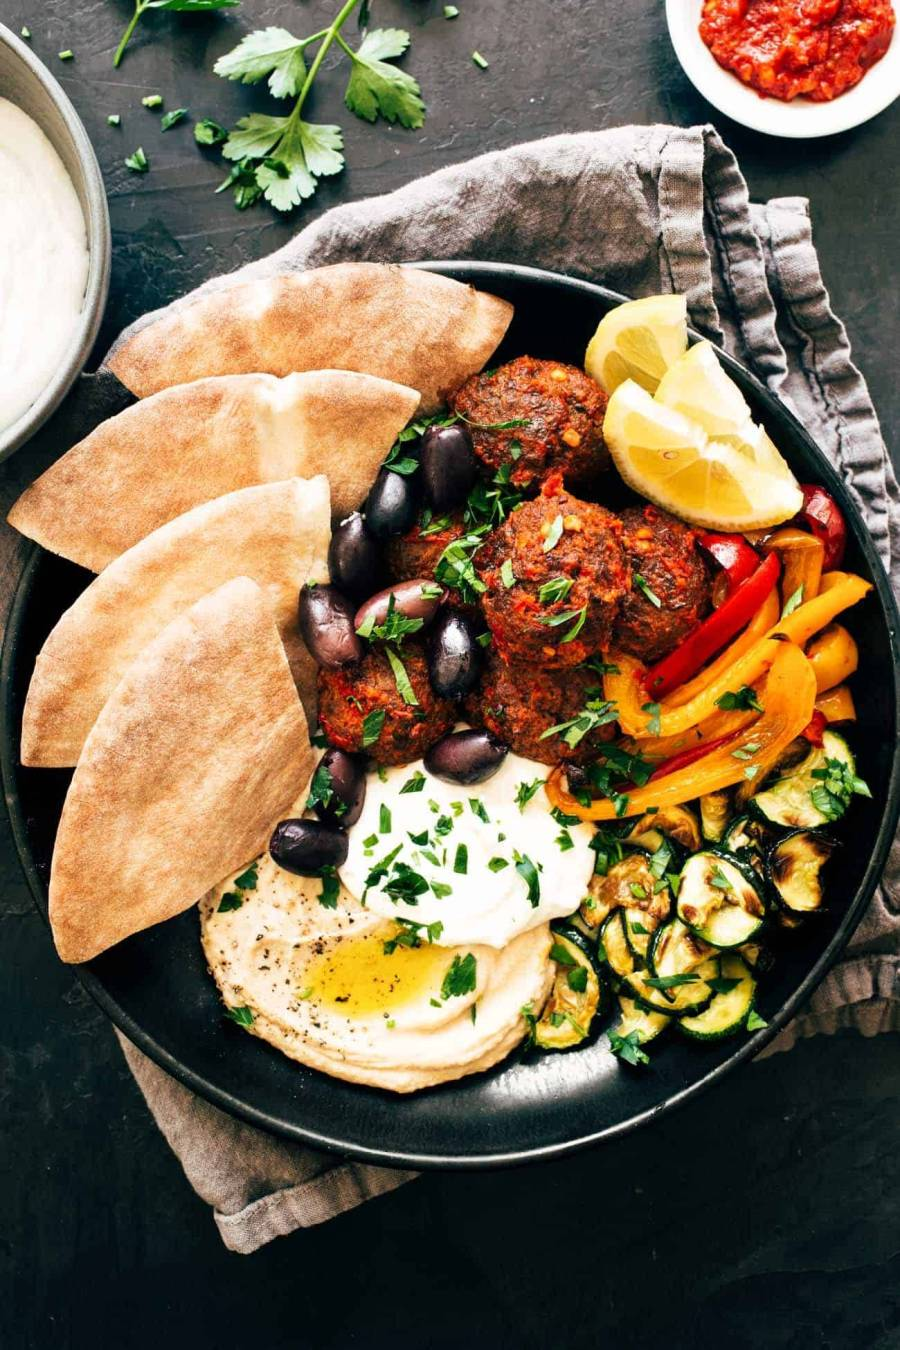 Harissa Meatballs with Whipped Feta in a bowl with peppers, zucchini, and pita bread